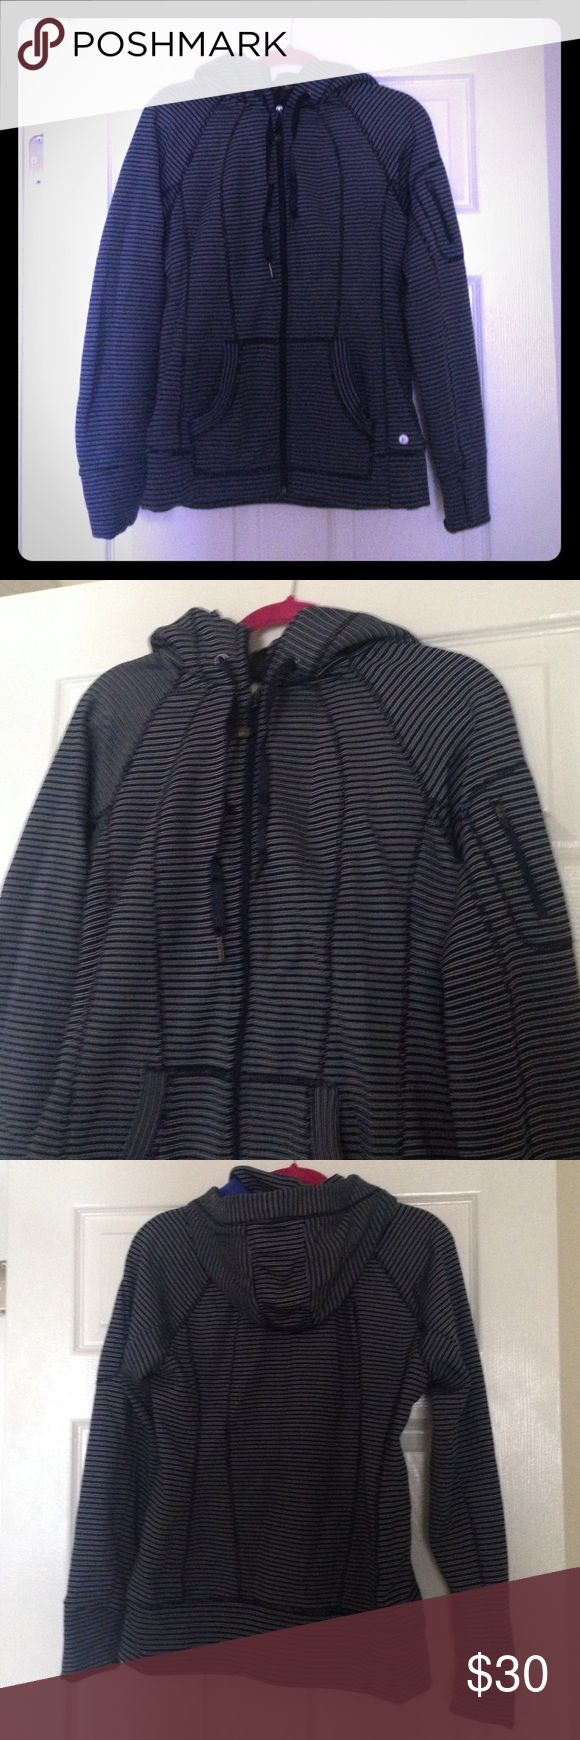 90 degrees yoga coat large Super nice yoga coat , fleece lined size large navy stripes, I got a ton of compliments of this jacket 90 degrees Tops Sweatshirts & Hoodies